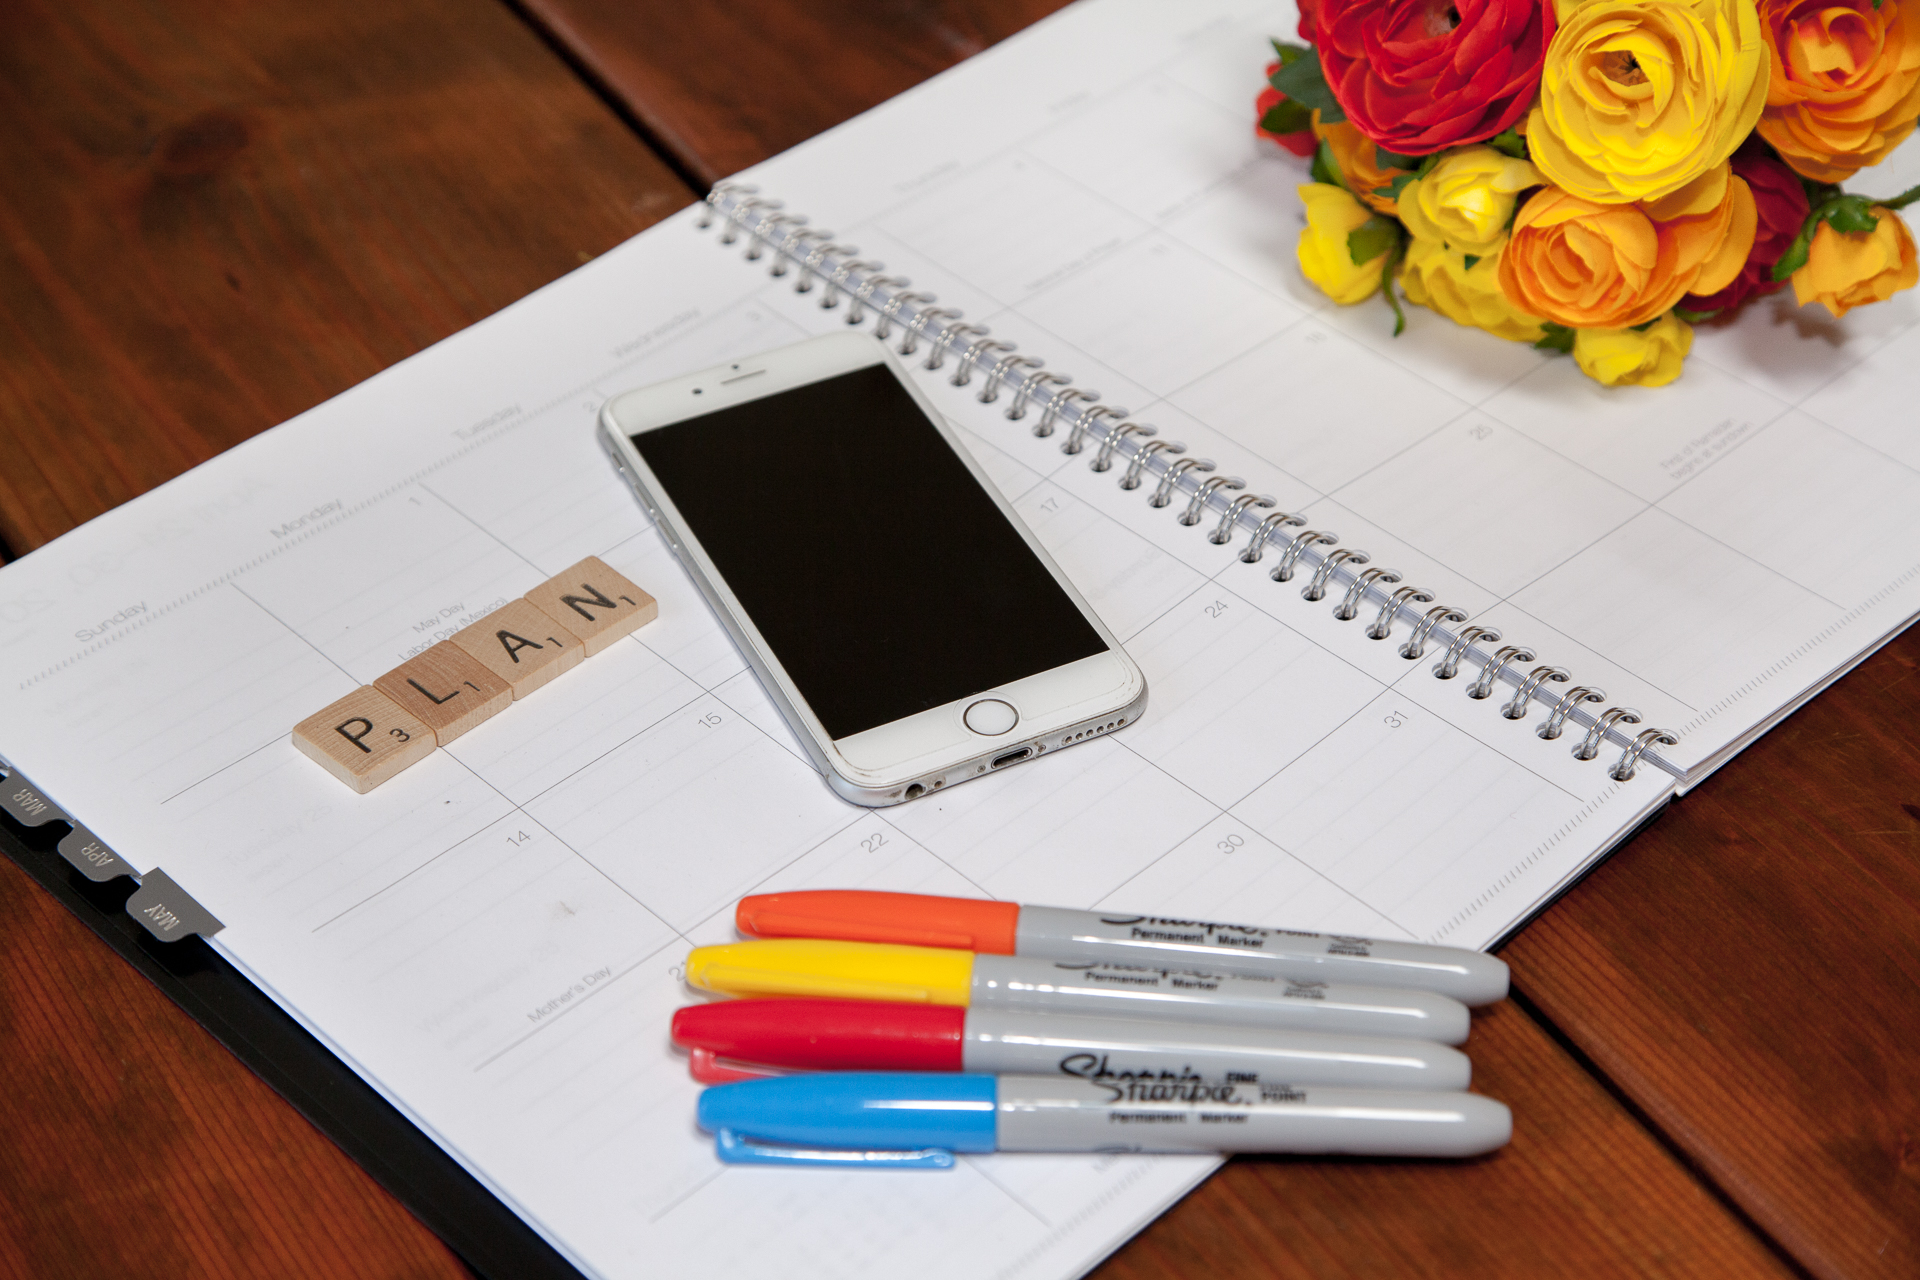 How to Organize Your Life - One Week at a Time